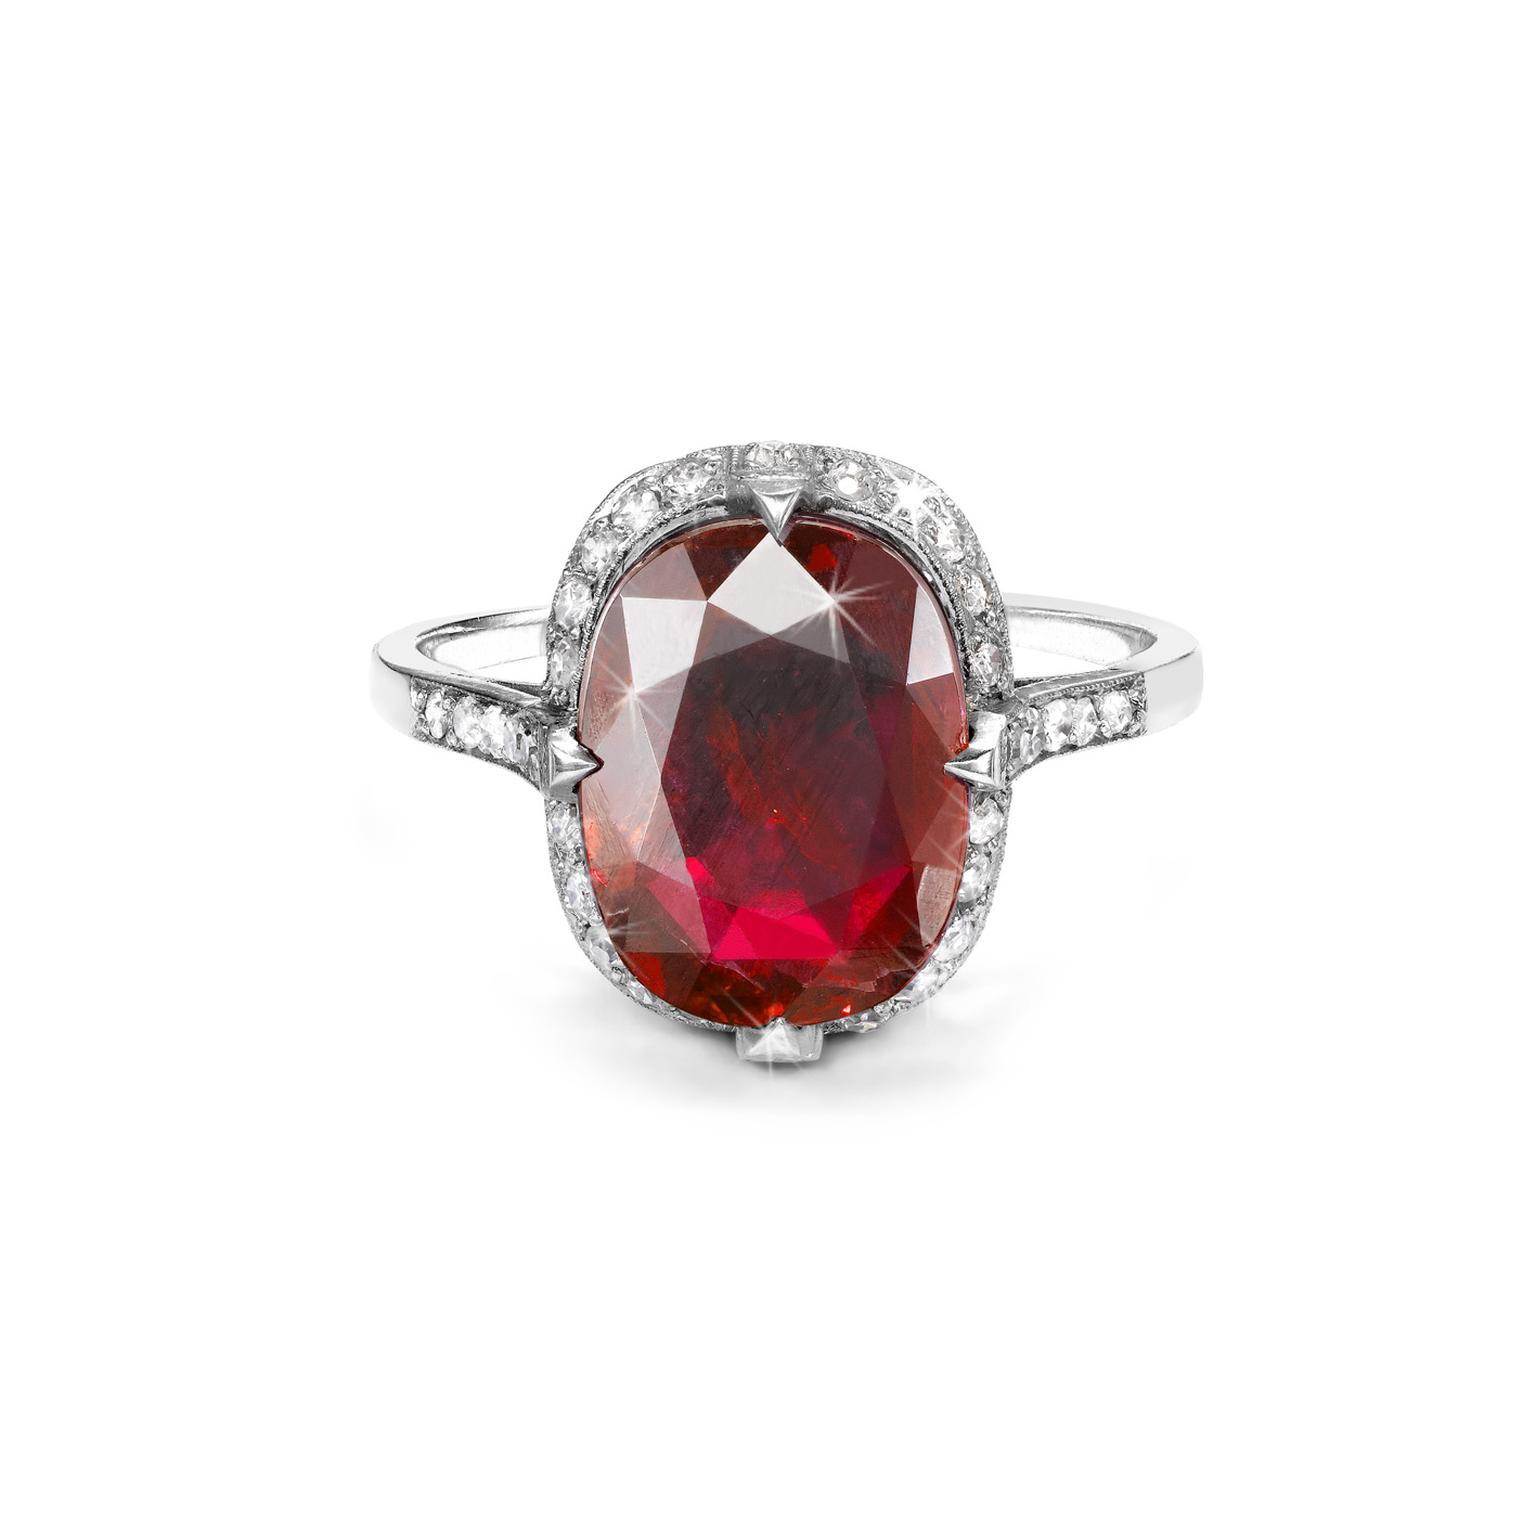 Pragnell Burmese Ruby ring